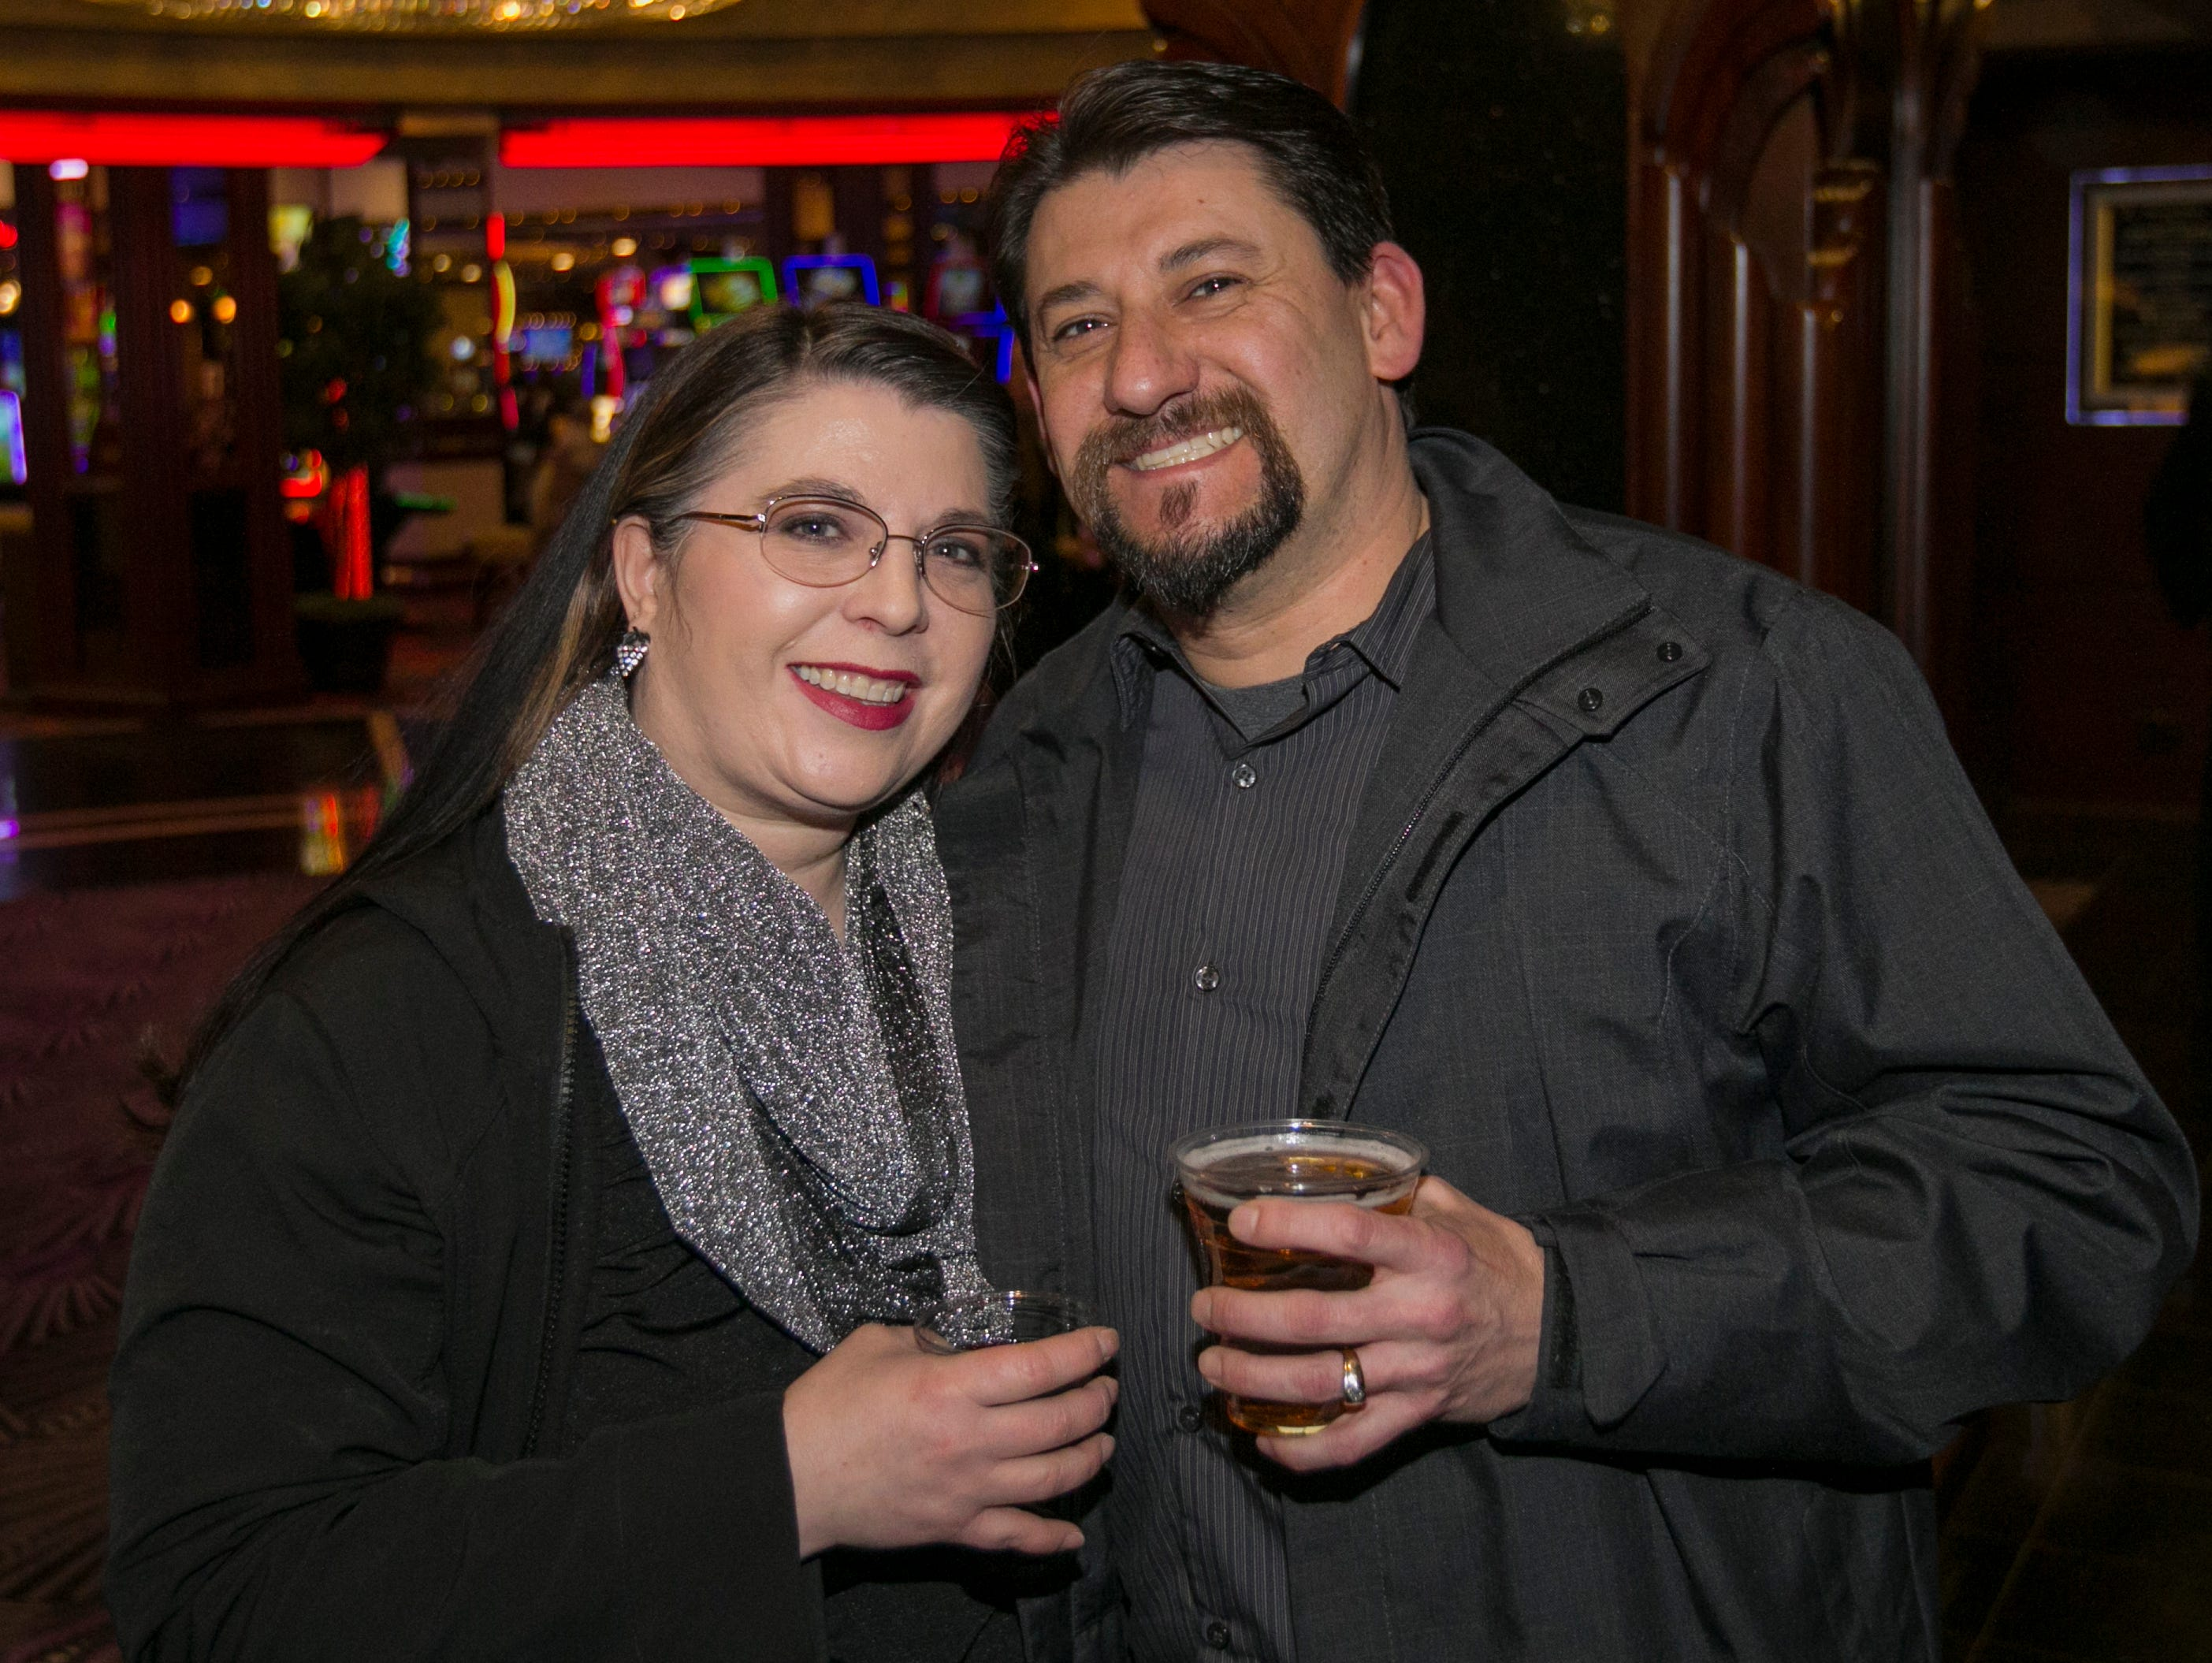 Monica and Chris Robb during the Sheep Dip Rehearsal on Thursday night Jan. 10, 2019 at the Eldorado Hotel Casino in Reno, Nev.